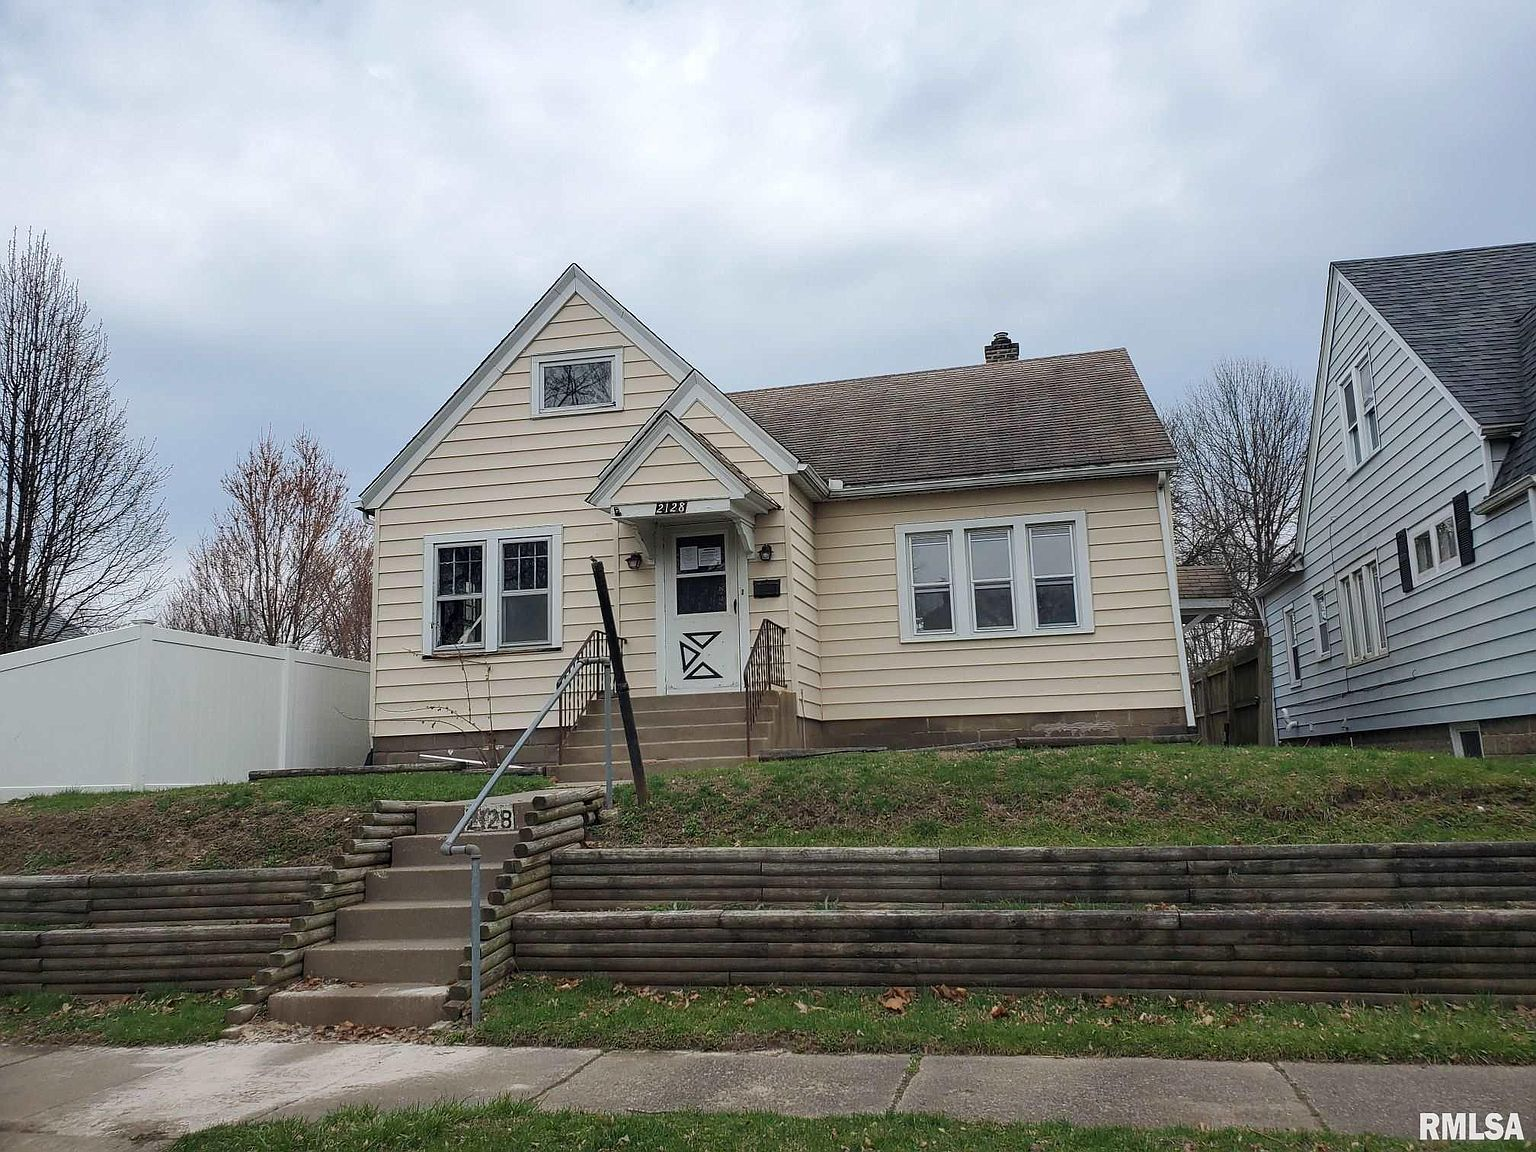 2128 3rd St Moline Il 61265 Zillow